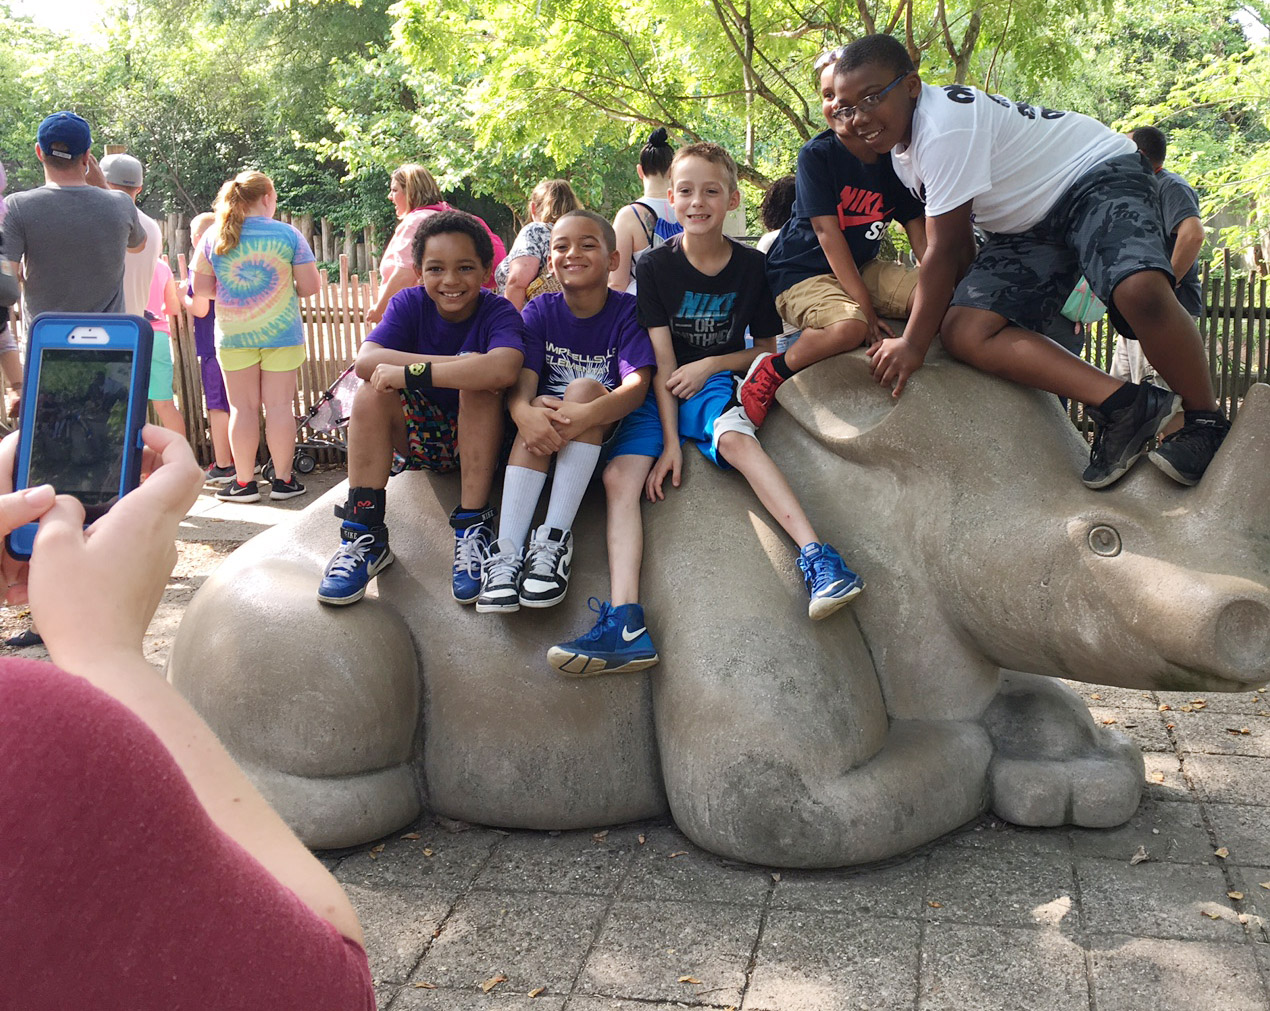 From left, CES third-graders Jalen Embry, Jaden Barbee, Caysen Tungate and Austin Sloan pose for a photo on an elephant statue.